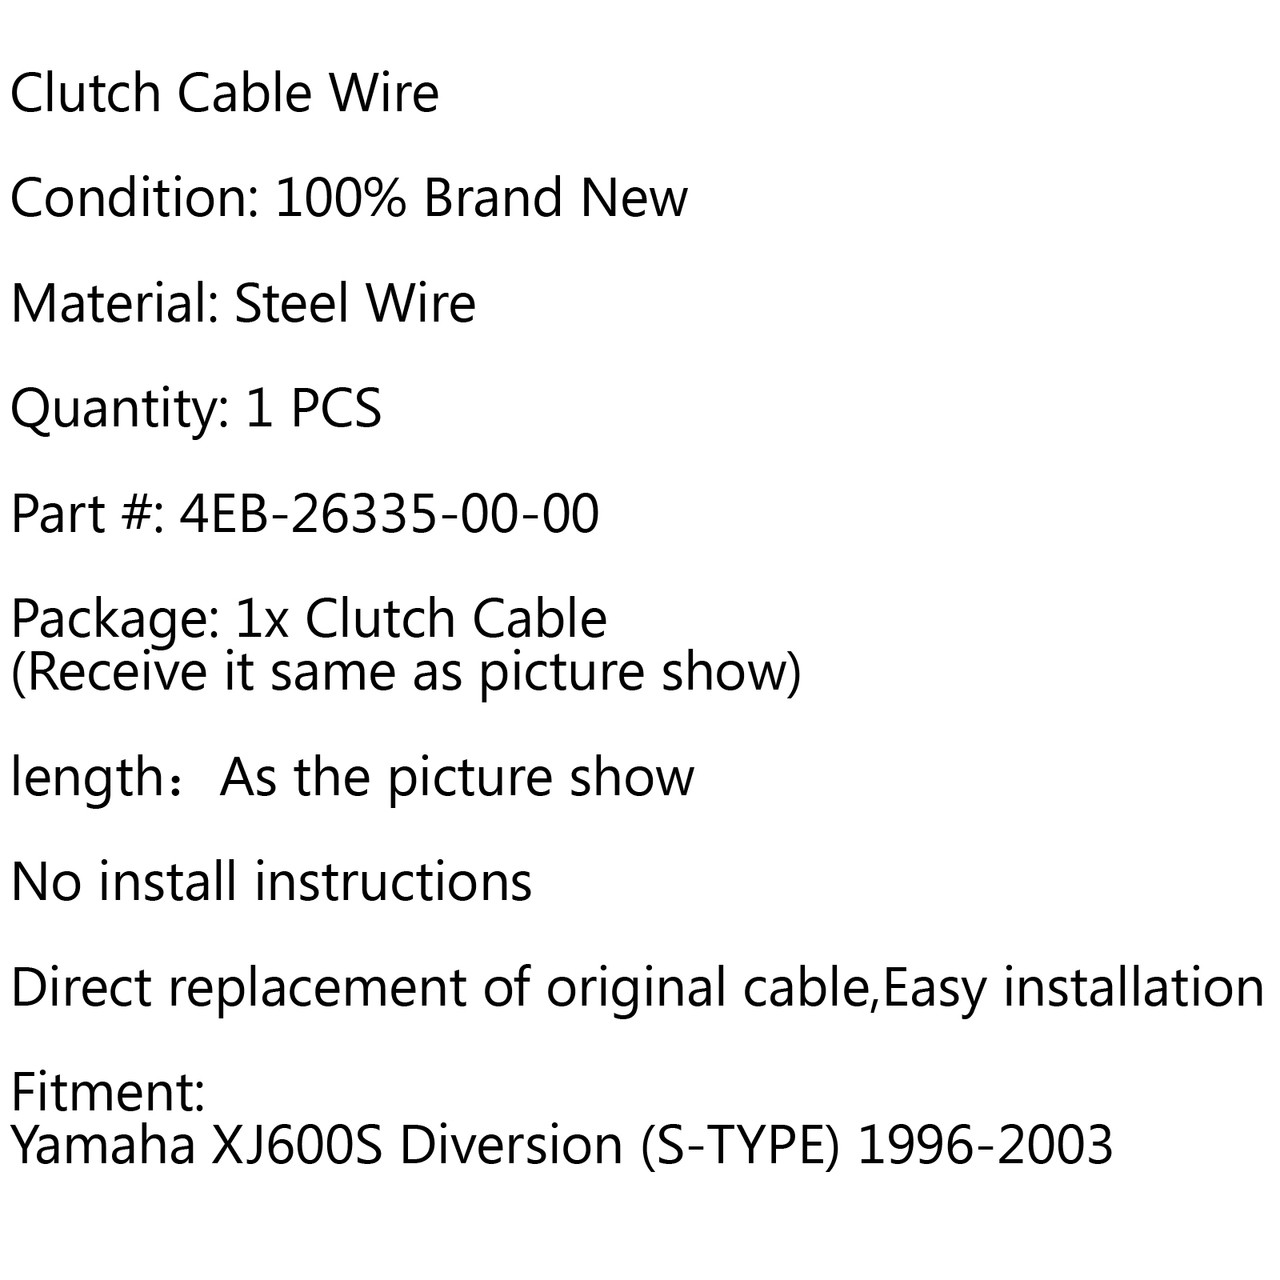 Clutch Cable Replacement Yamaha XJ600S Diversion (S-TYPE) (1996-2003)